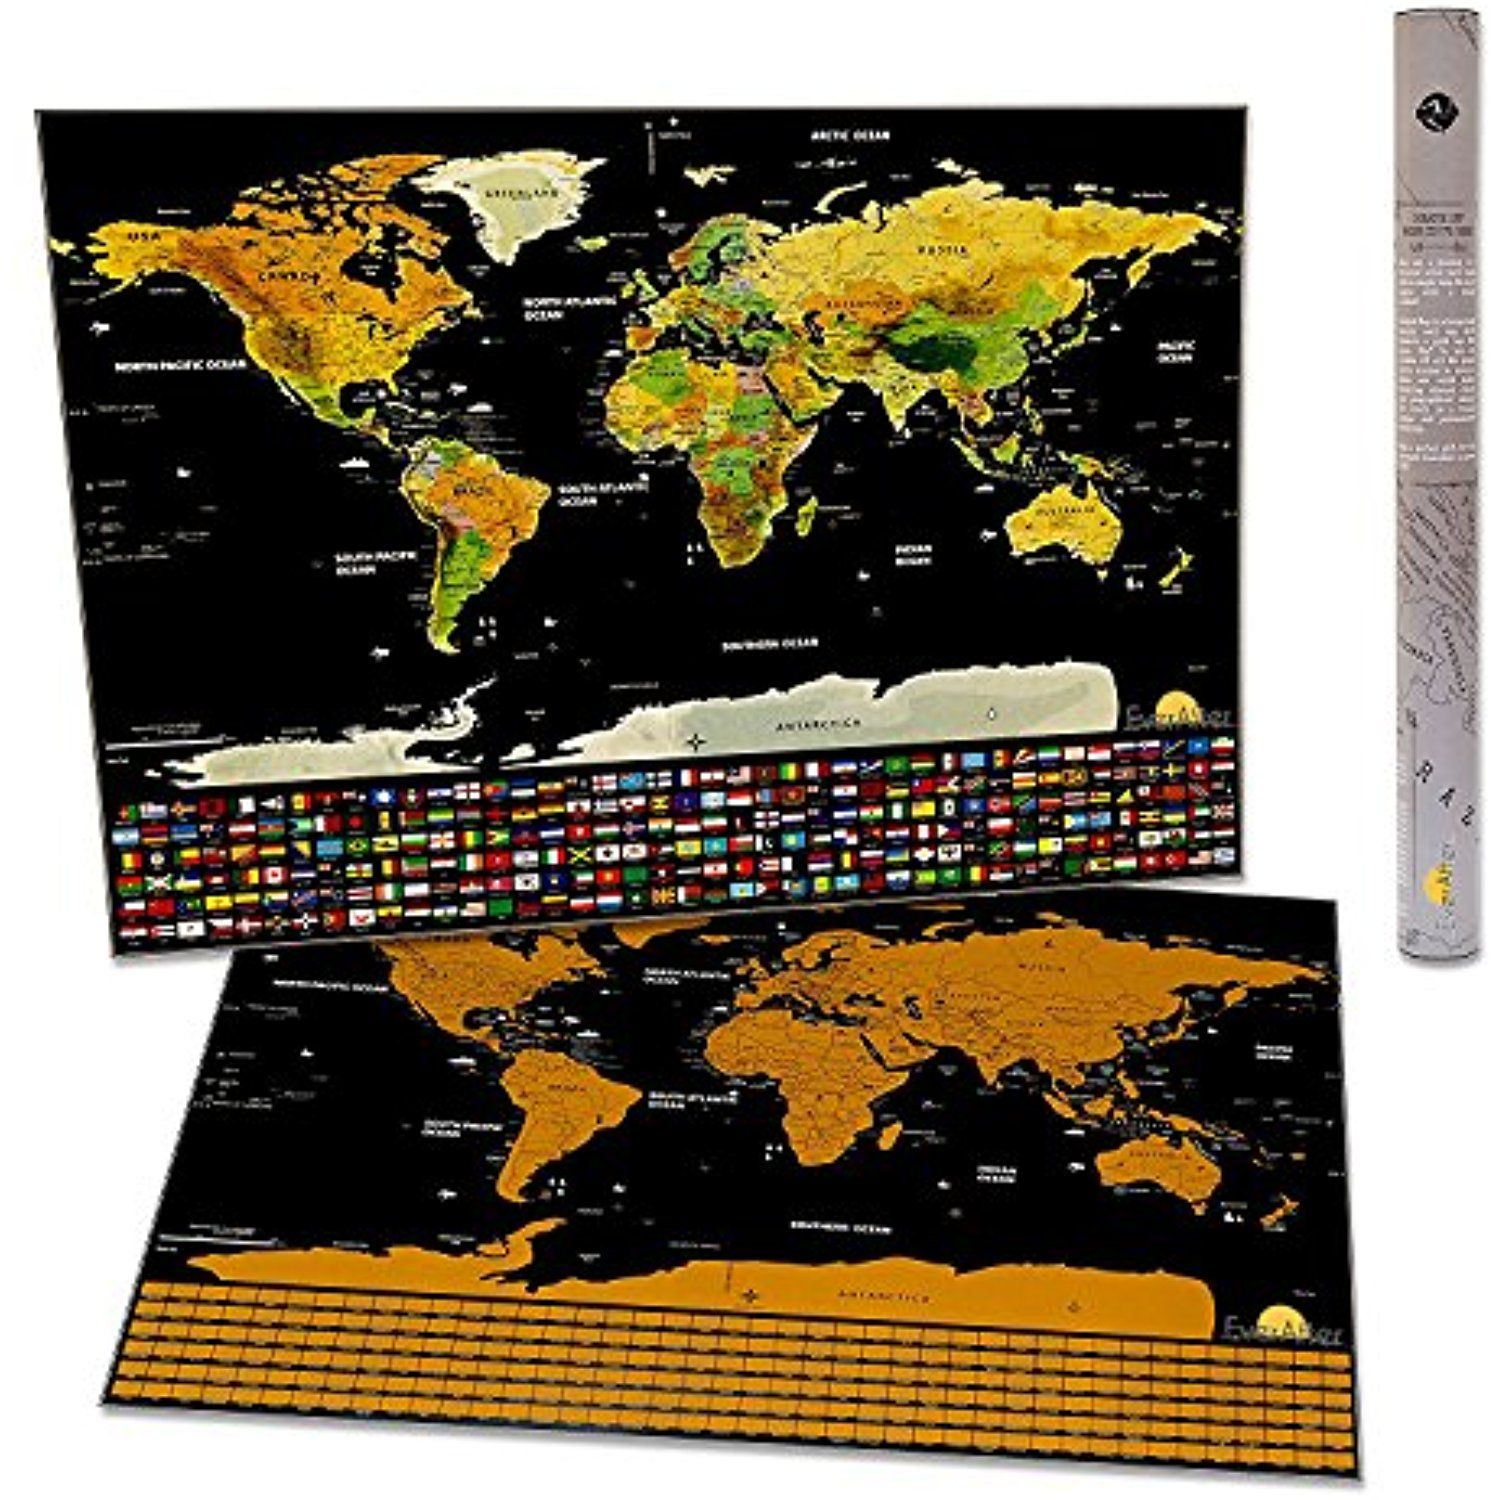 Extra large scratch off world map poster detailed design and extra large scratch off world map poster detailed design and vibrant colors amazing gift for travellers with flags and us states outlined gumiabroncs Images